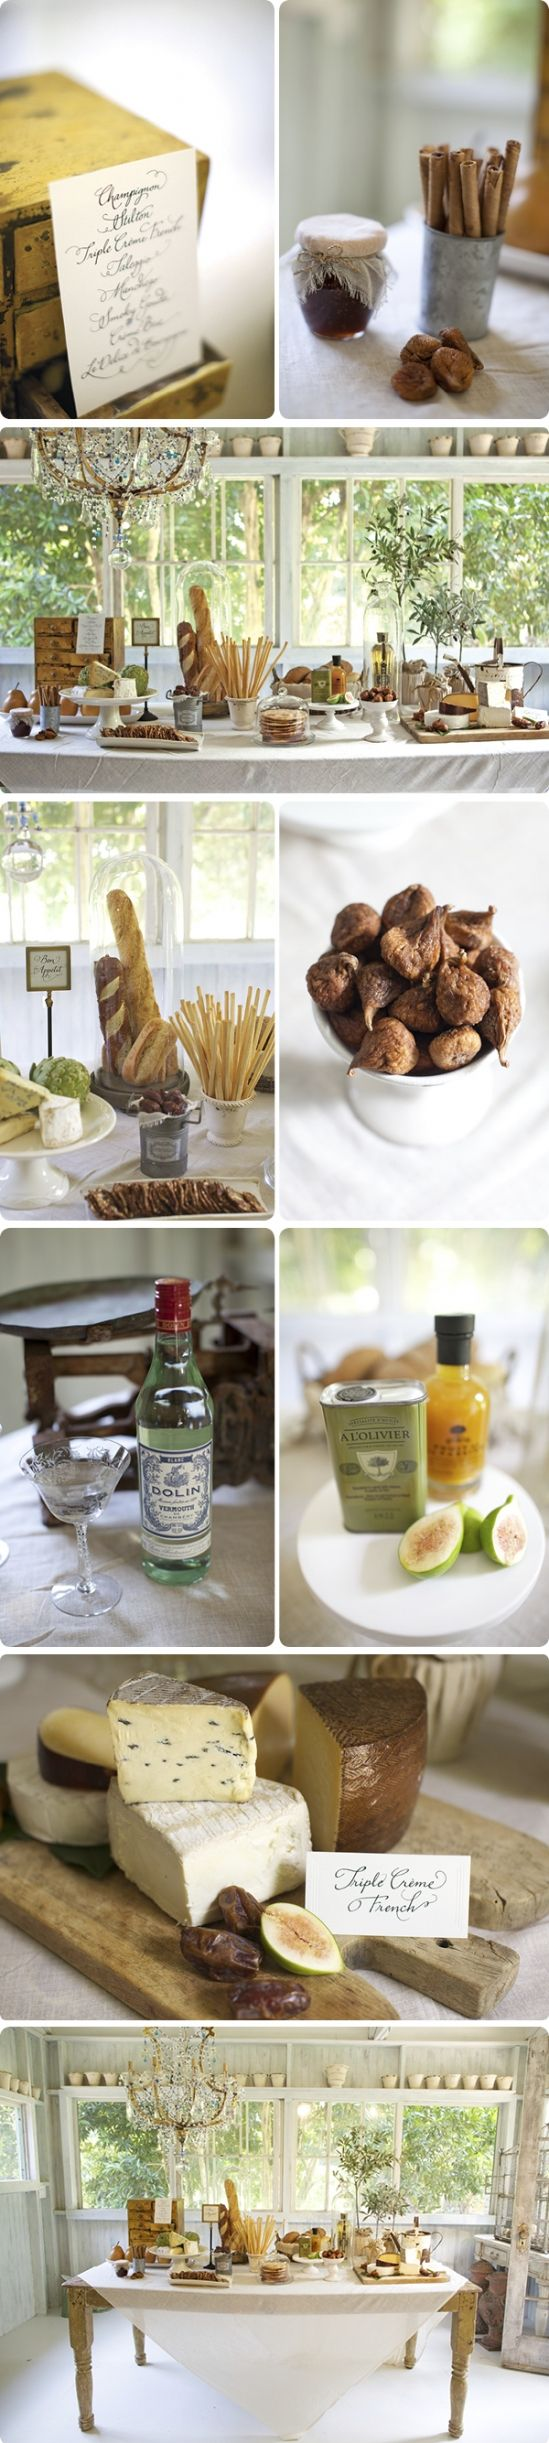 Bon Appétit: A Display of European Cheeses and Libations » Love Notes Wedding Blog